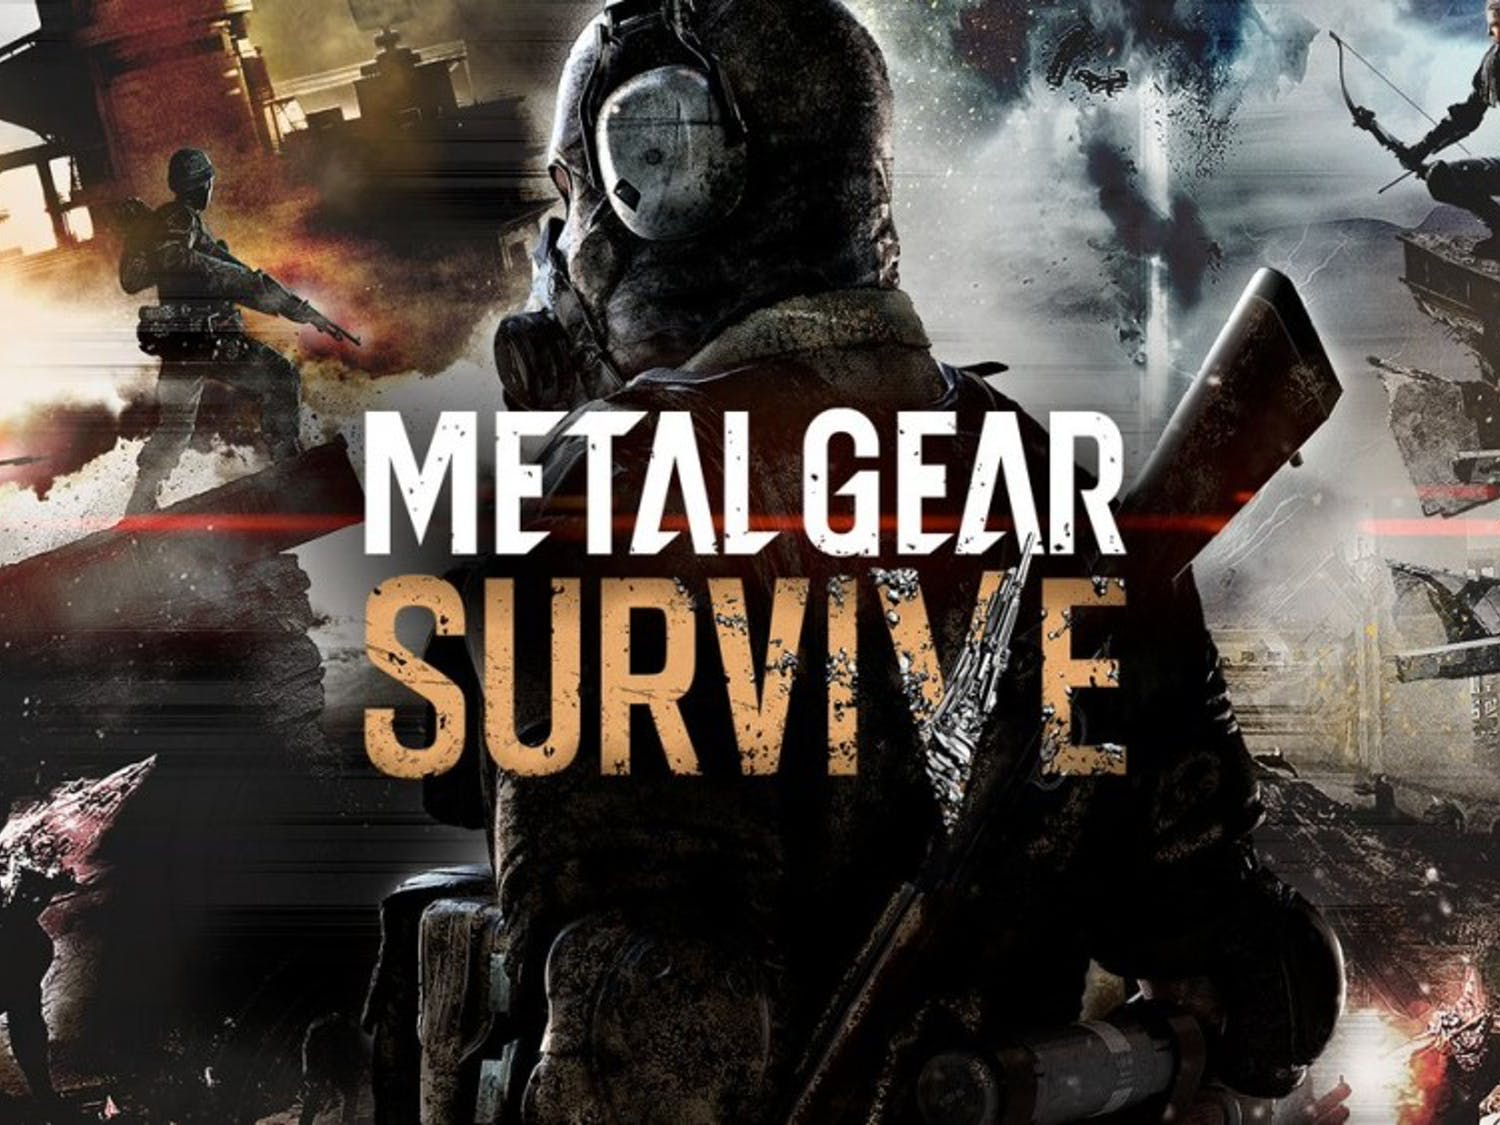 """Metal Gear Survive"" is now available for PS4, Xbox One and PC."